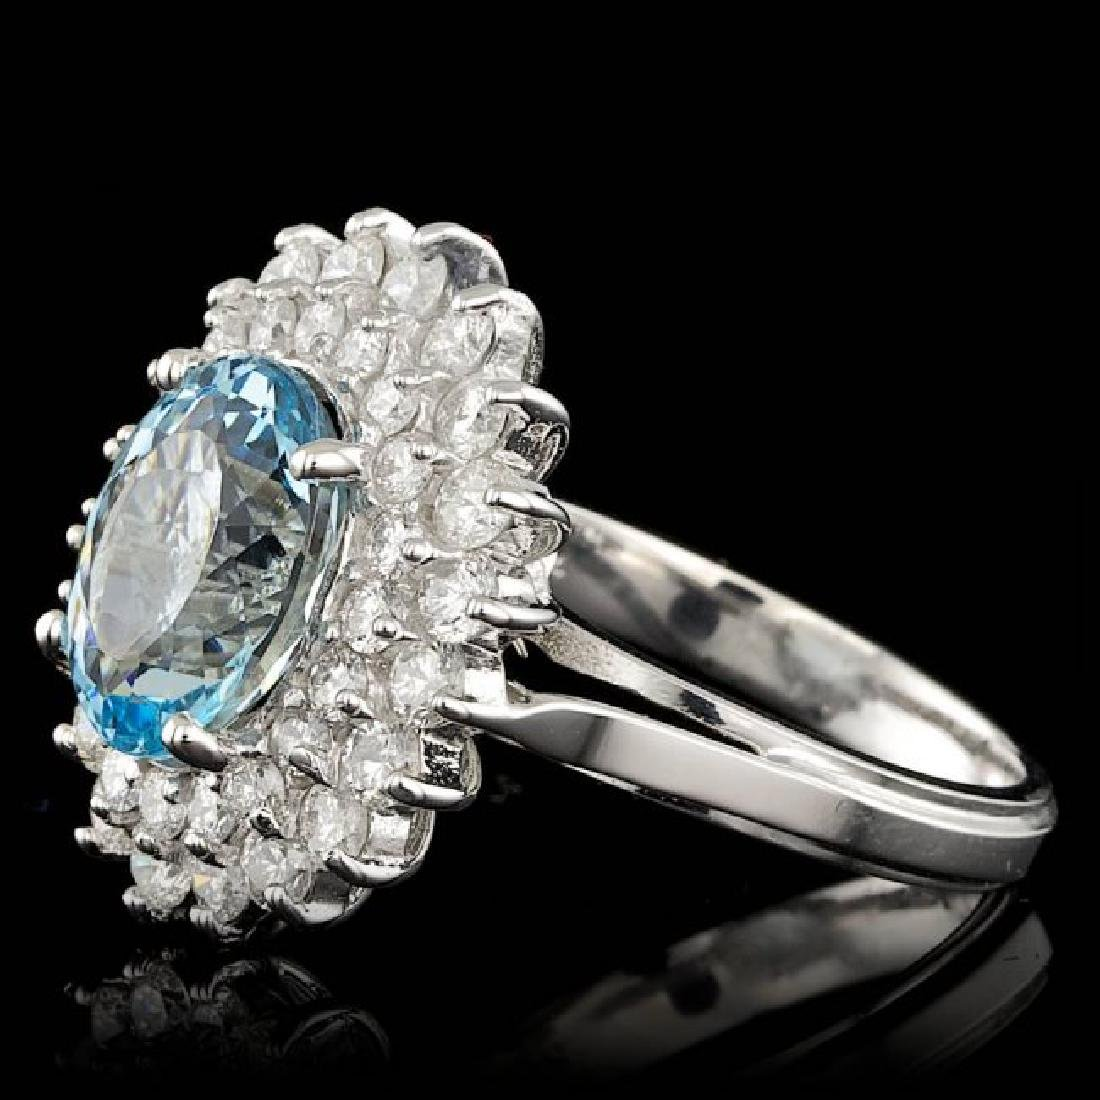 14k Gold 3.00ct Aquamarine 1.60ct Diamond Ring - 2